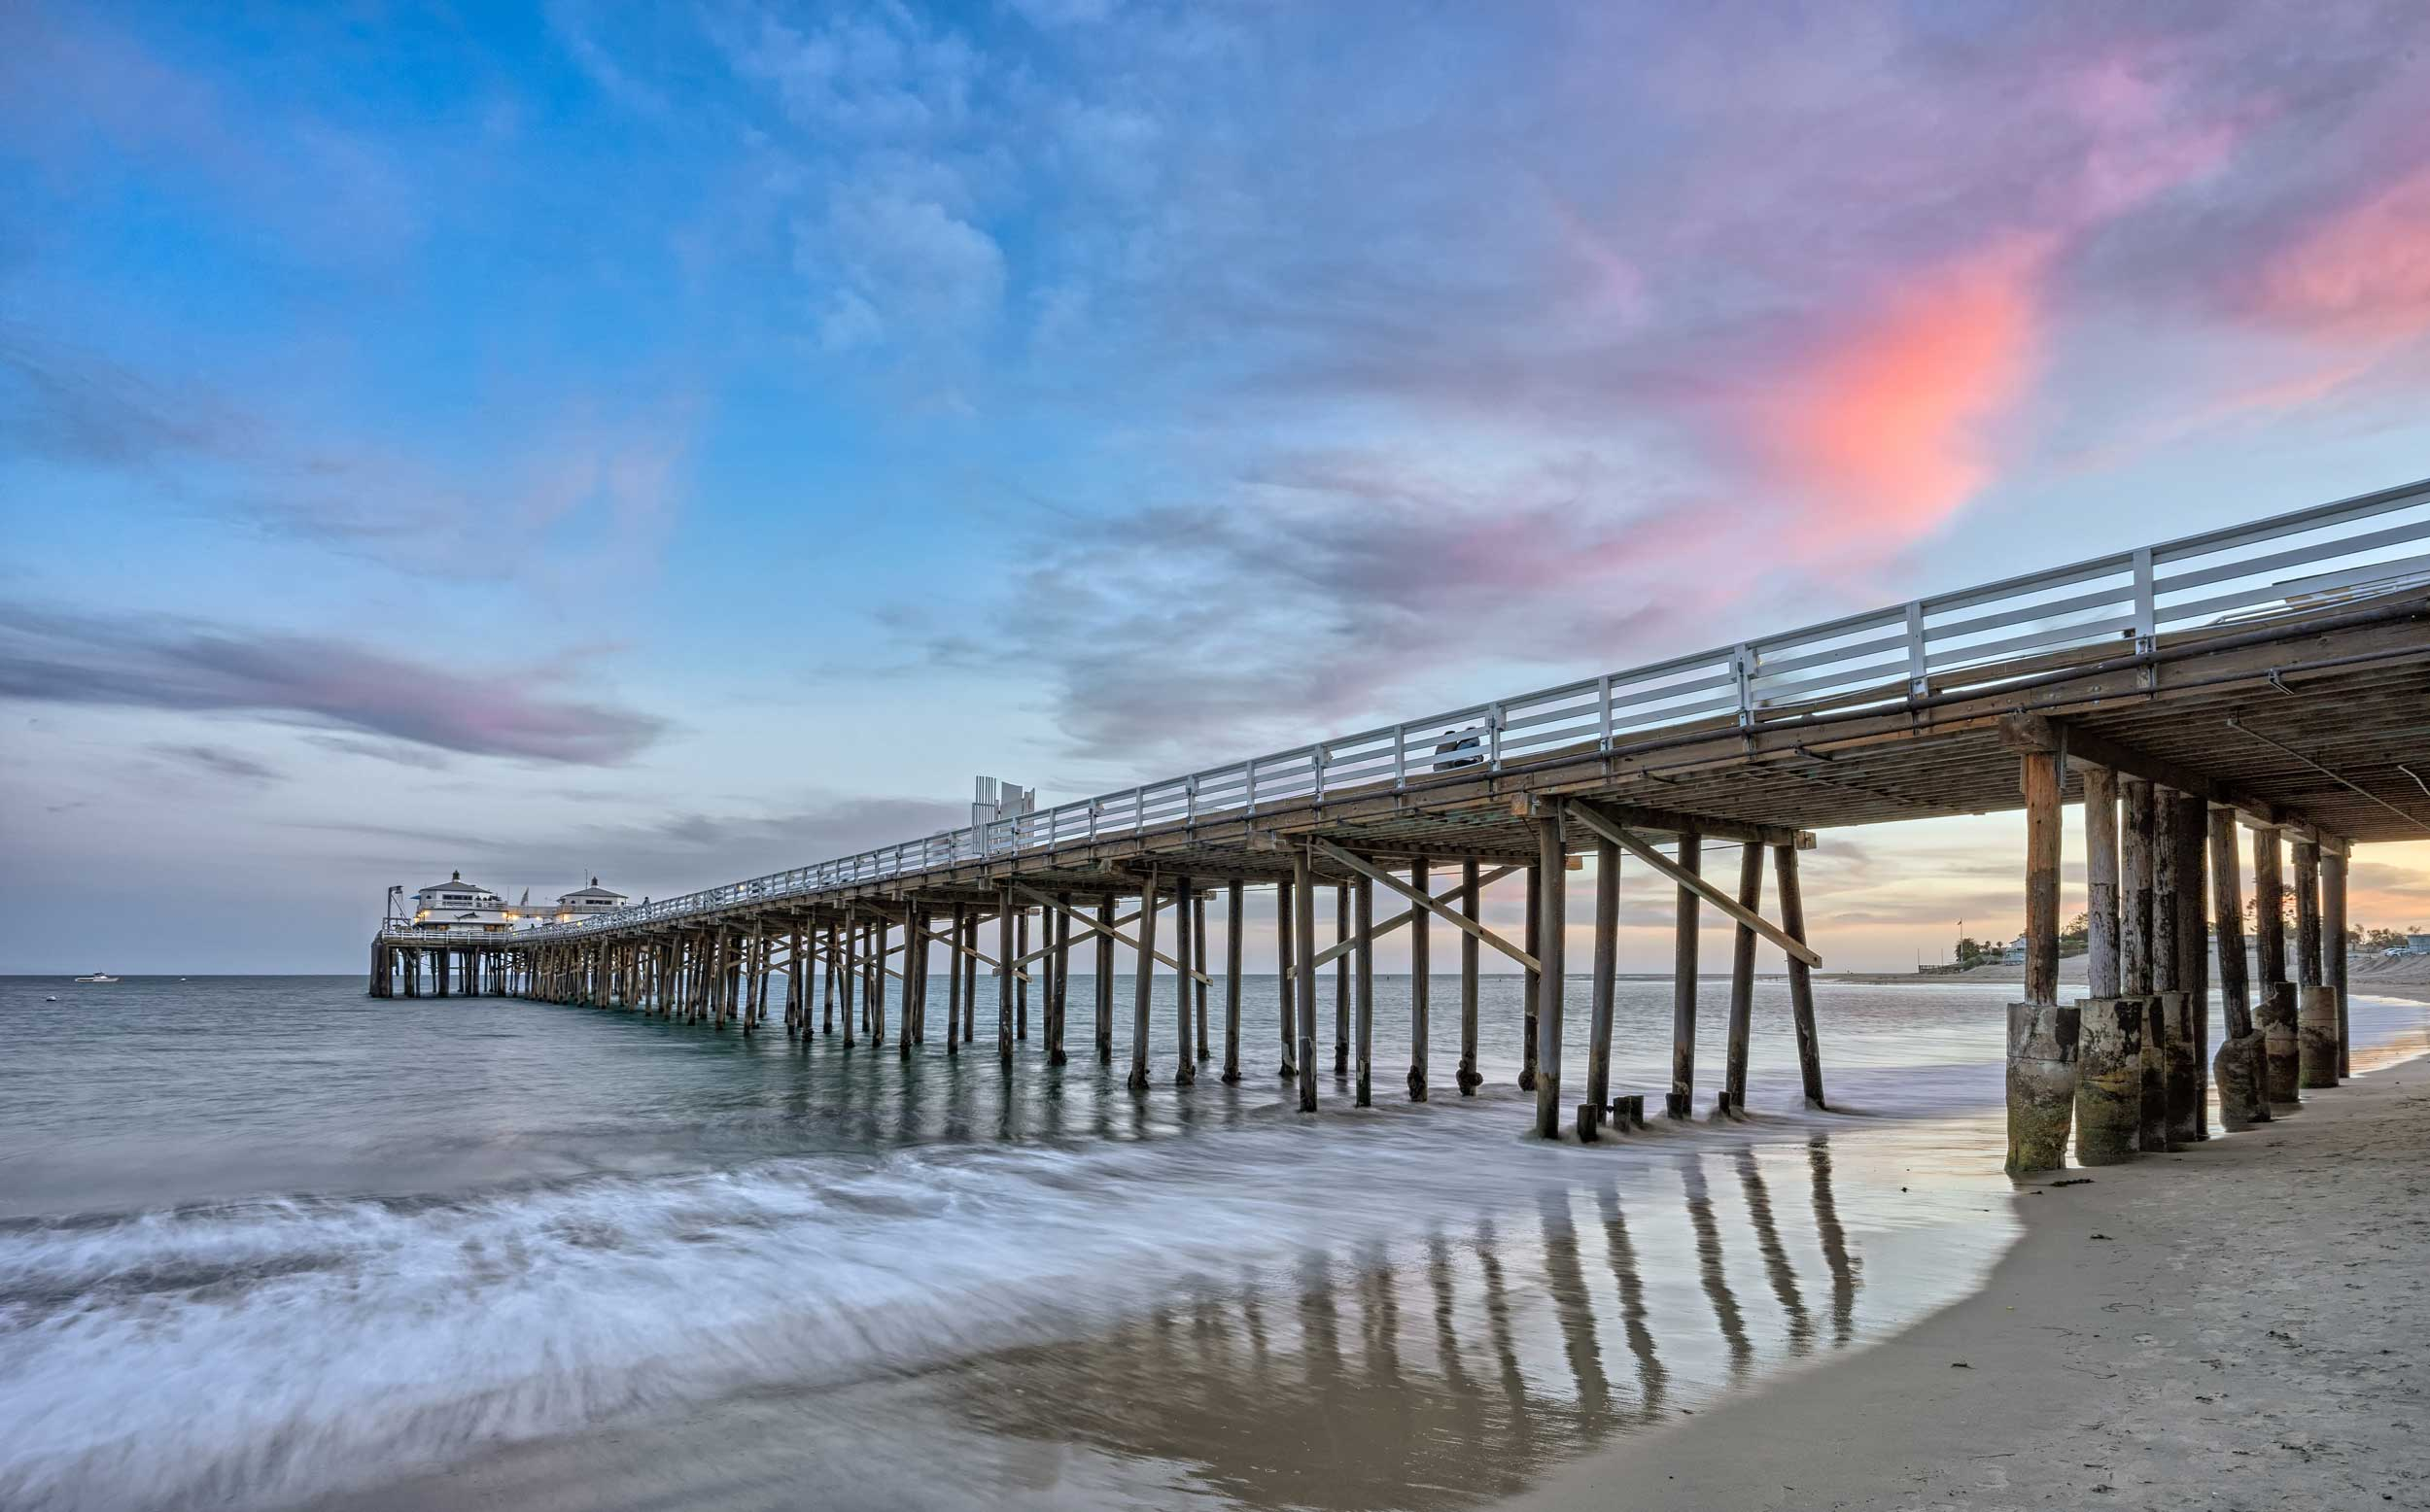 A long pier on wooden stilts extending out to sea at Malibu